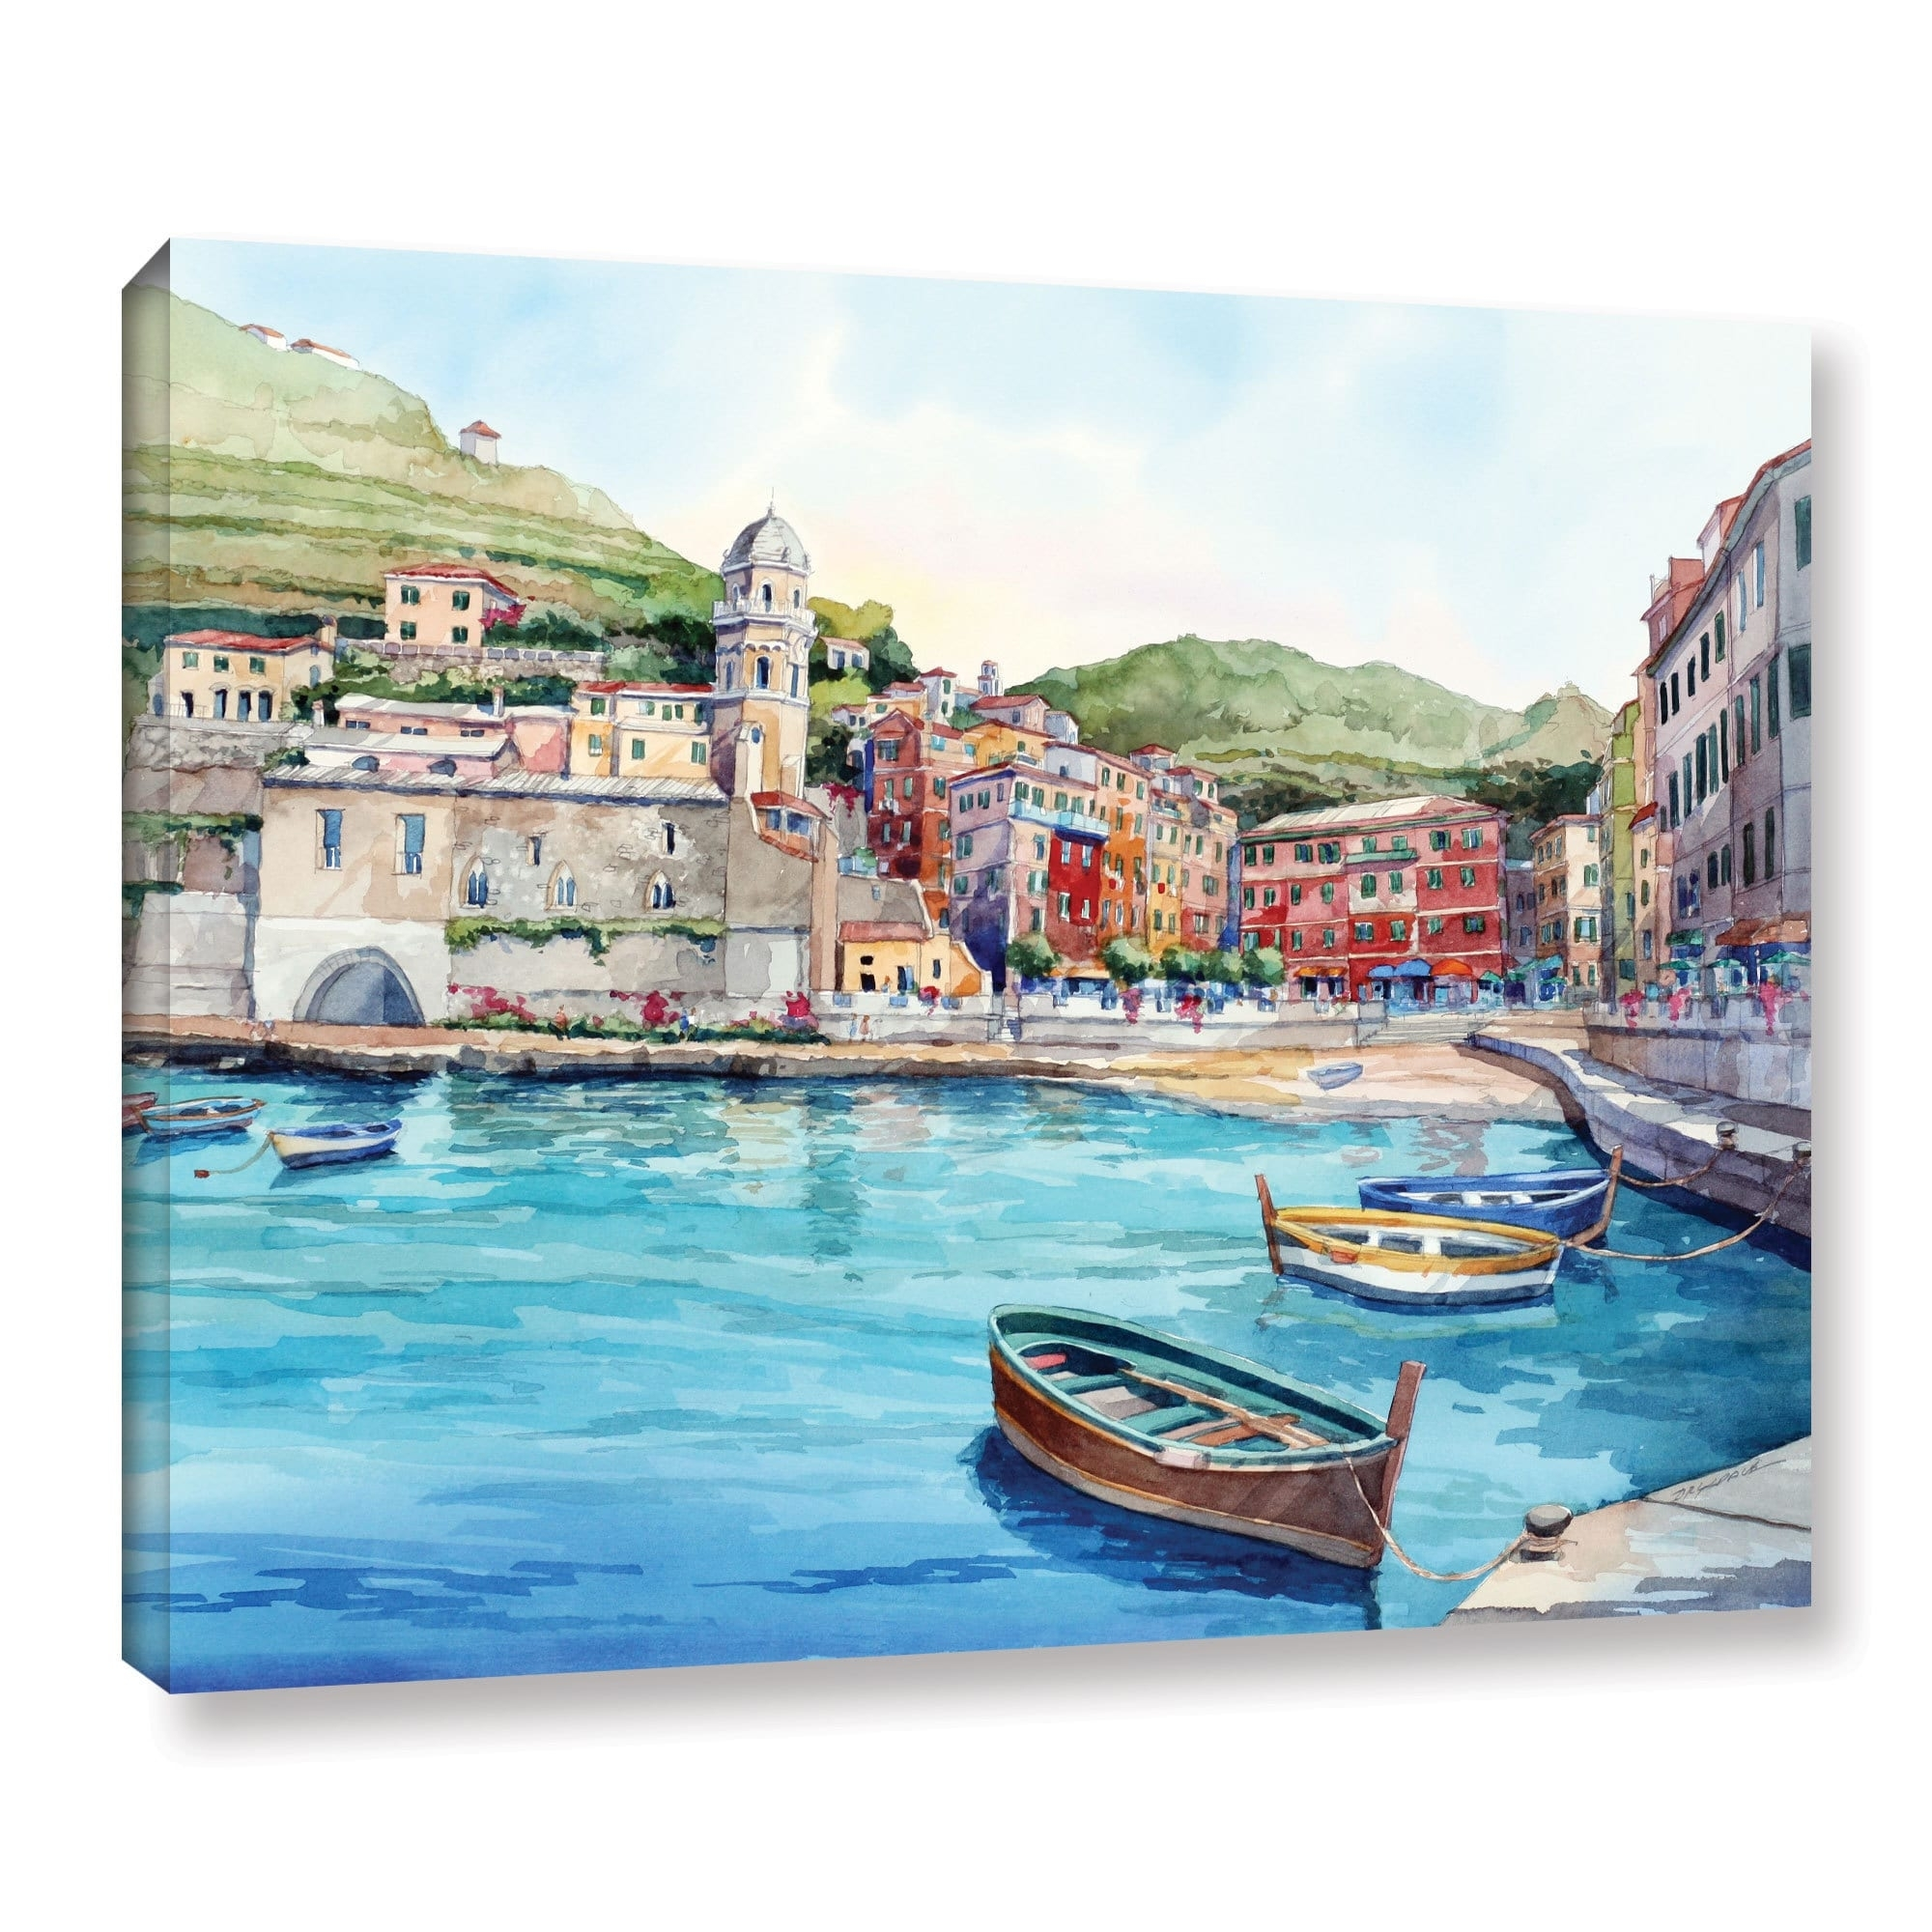 Artwall Bill Drysdale ' Vernazza ' Gallery Wrapped Canvas – Free Within Most Up To Date Joval Canvas Wall Art (View 2 of 15)